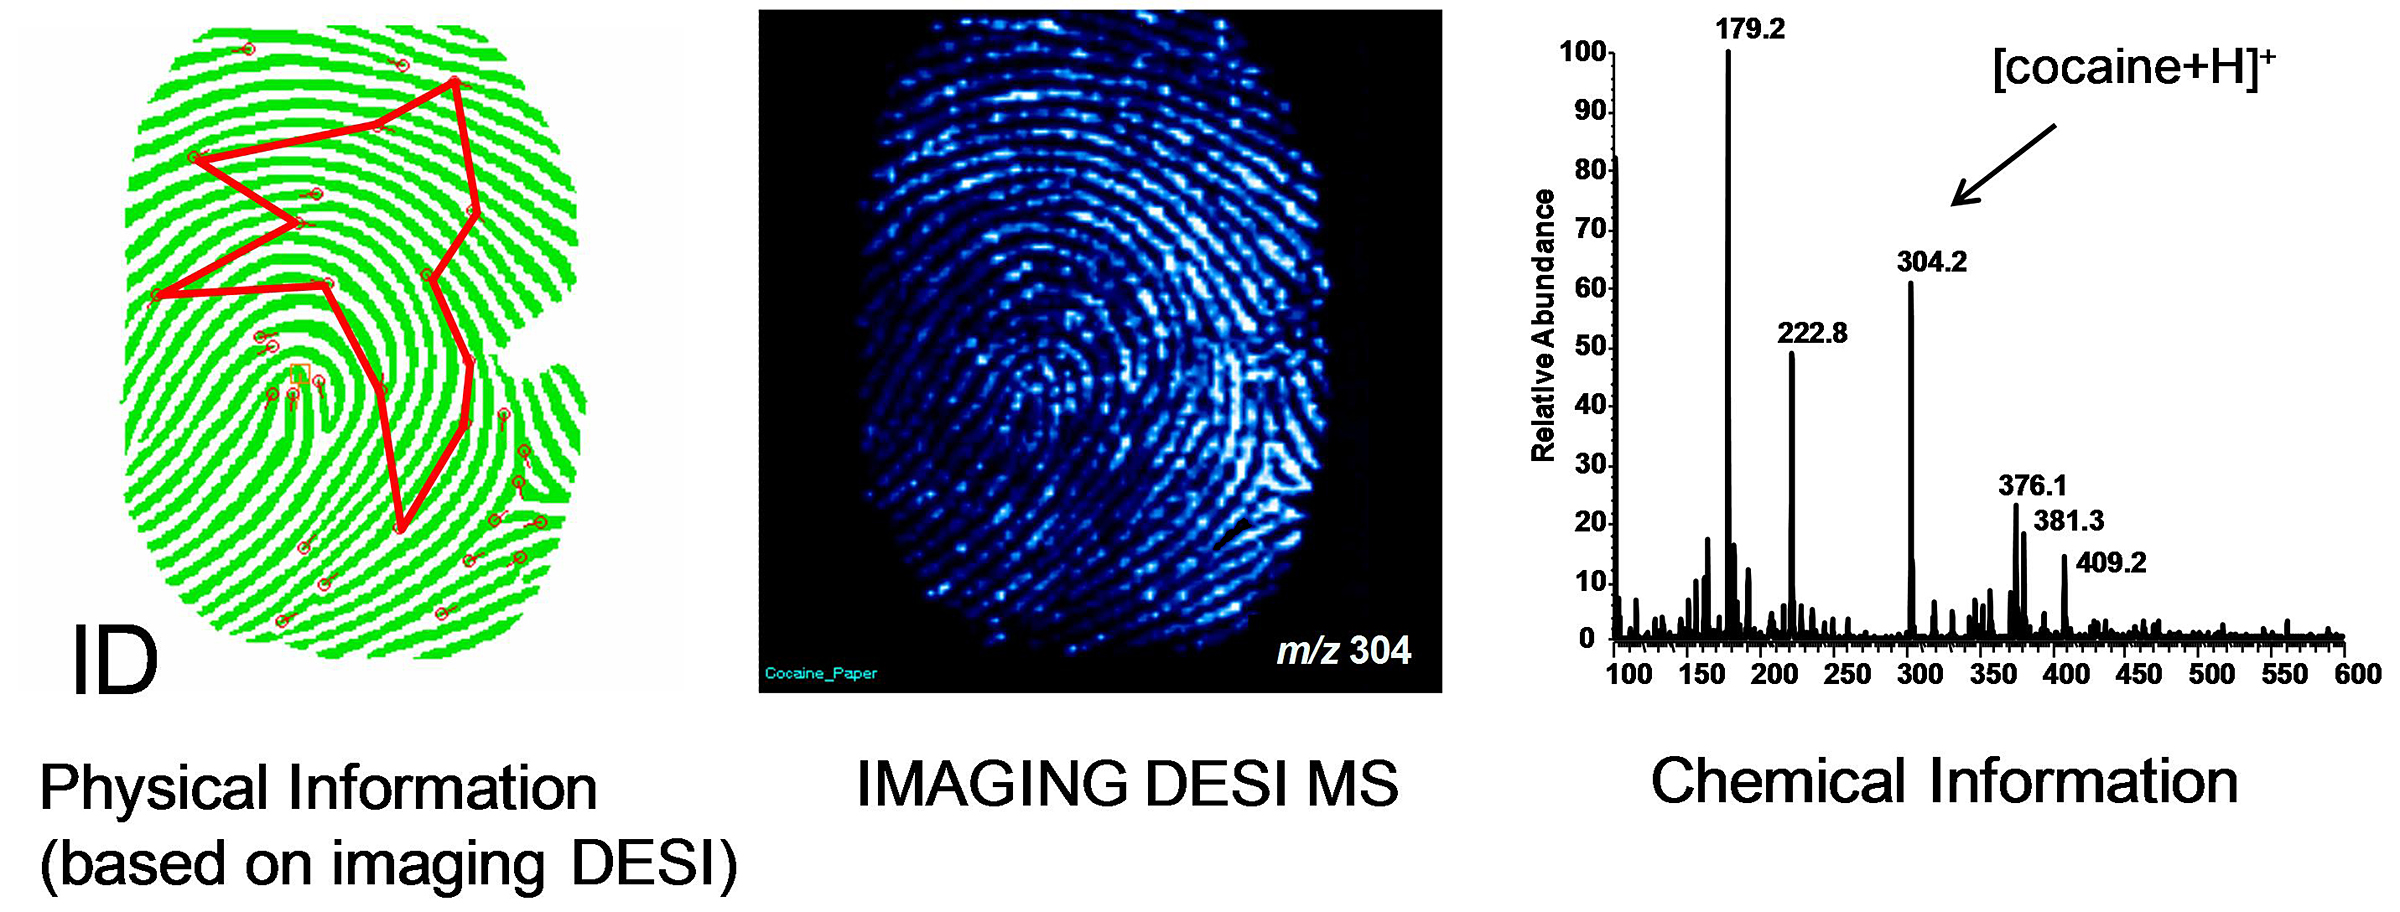 Fingerprints provide clues to more than just identity